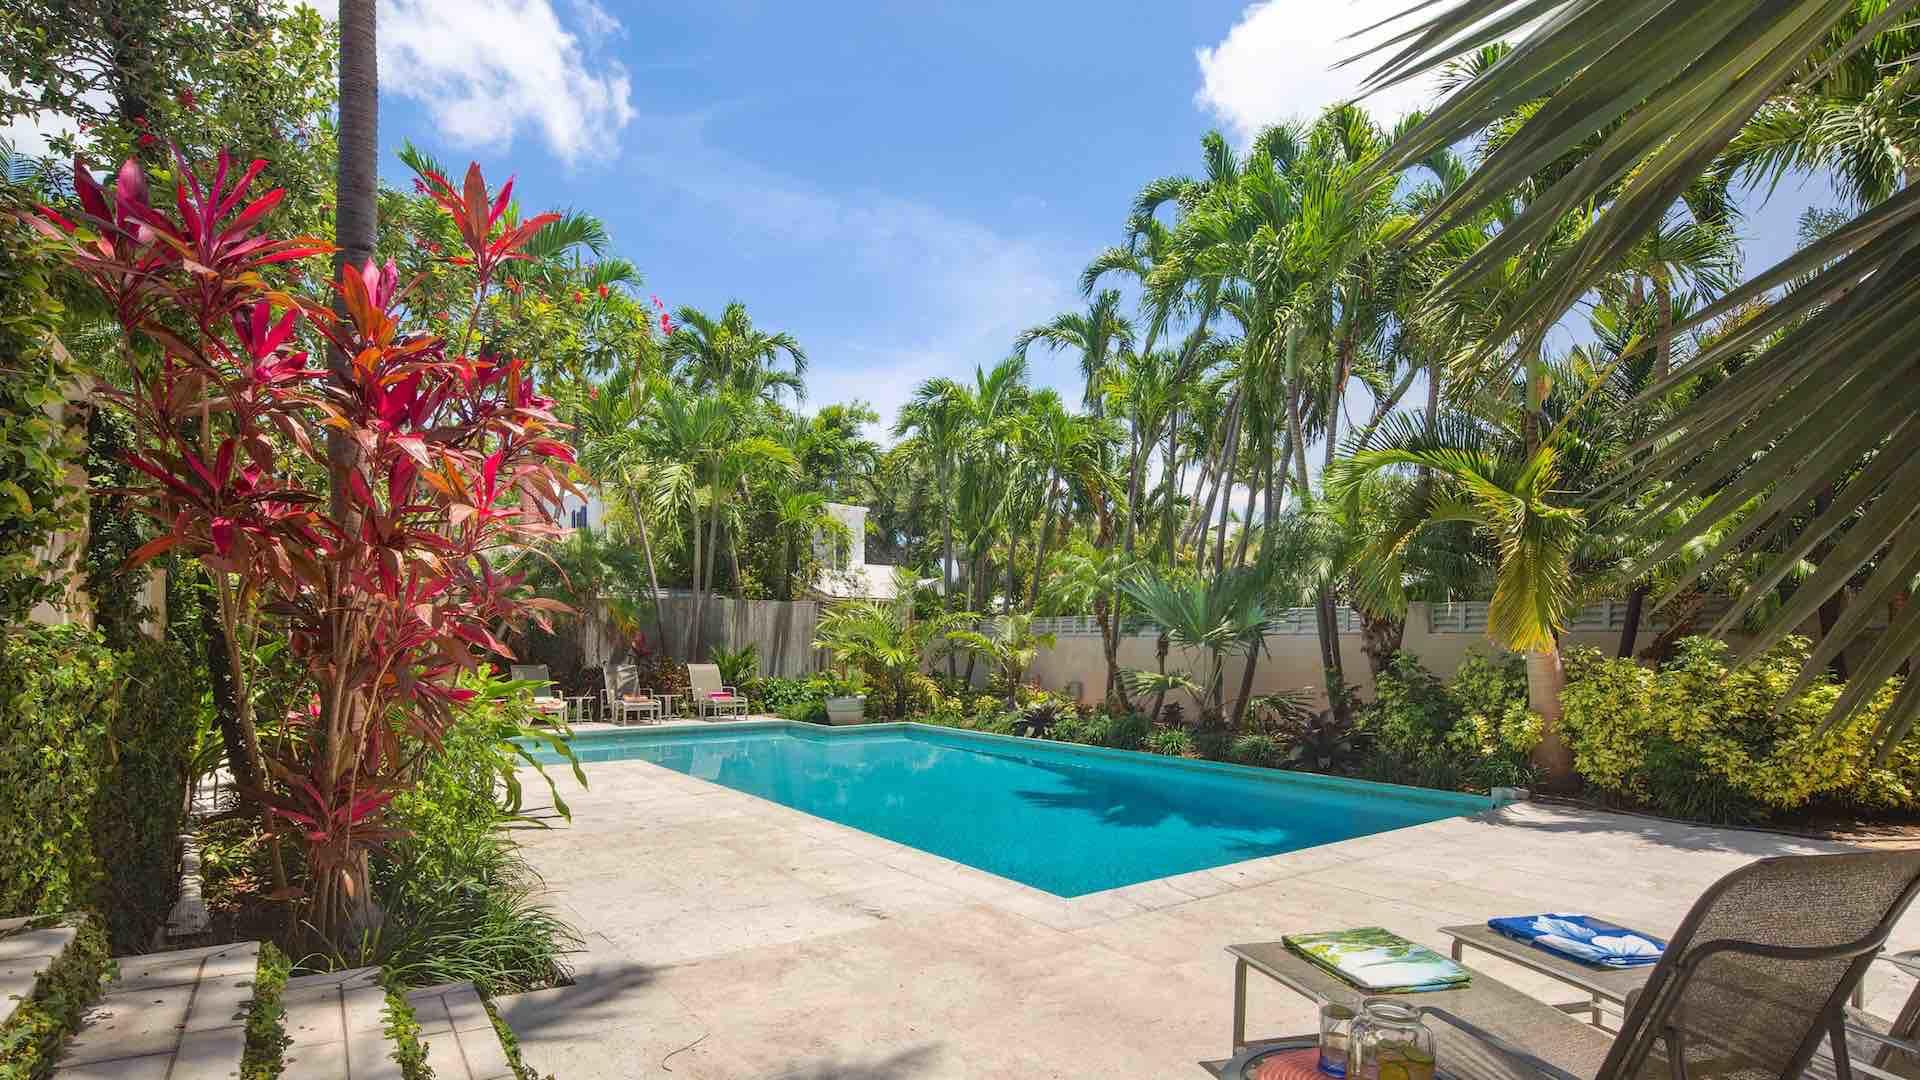 Tropical lush landscaping can be found throughout the property...